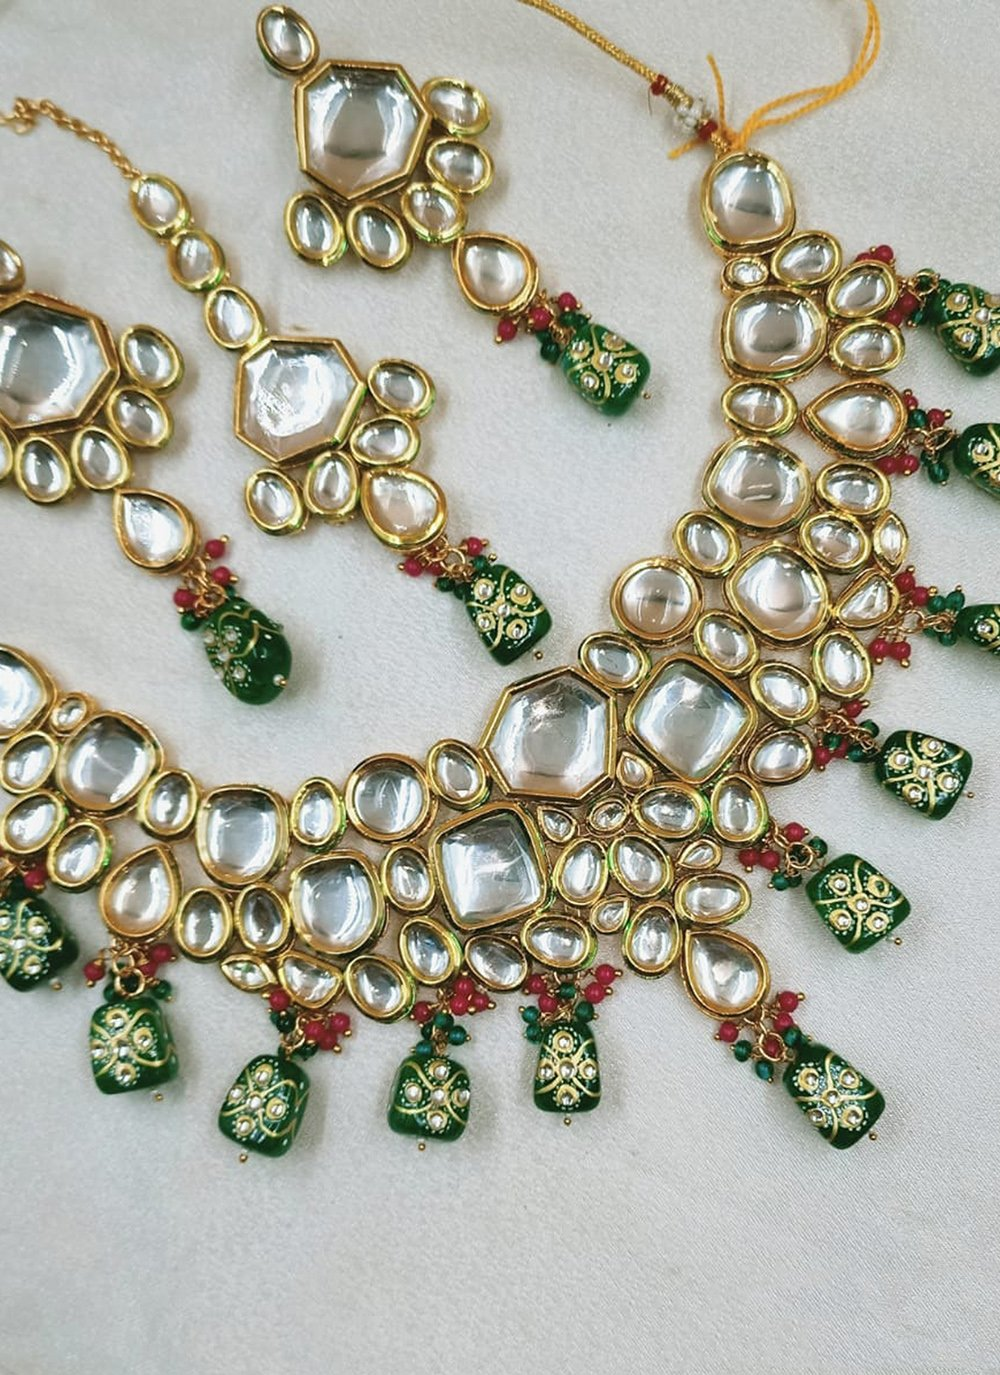 Gold and Green Engagement Necklace Set